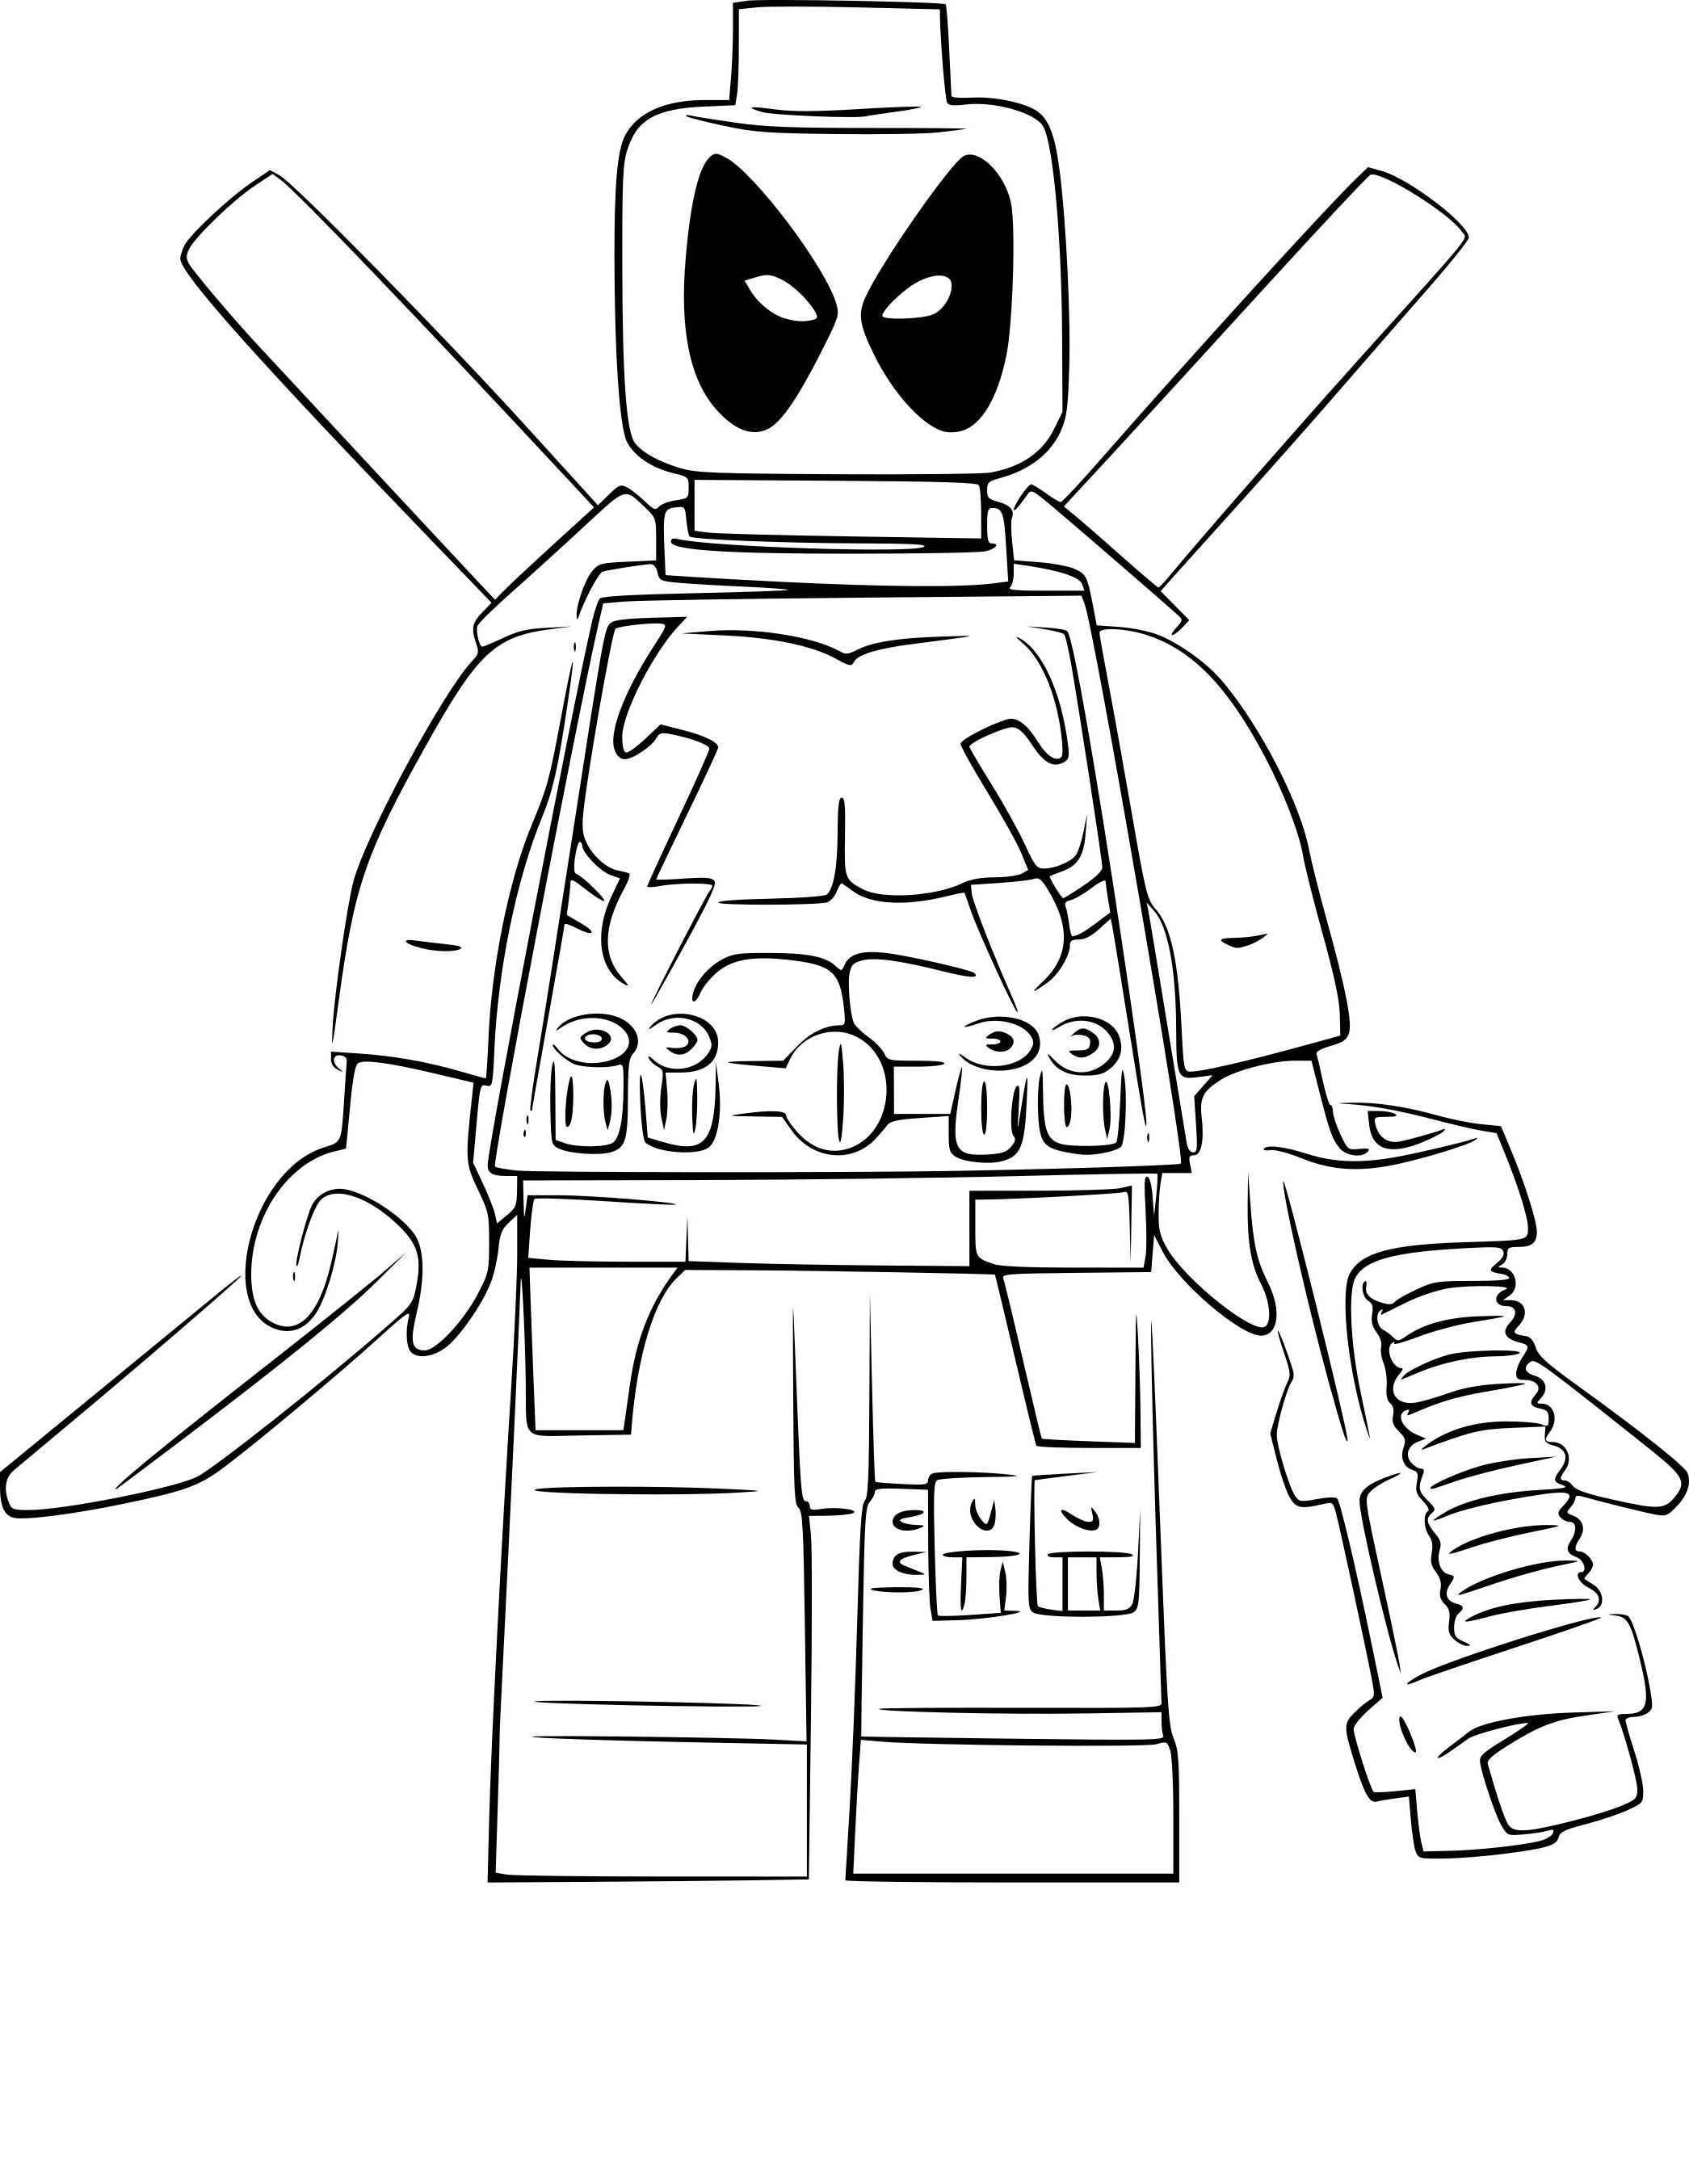 Trouver 21 Coloriage Noel Lego Coloring Pages Lego Deadpool